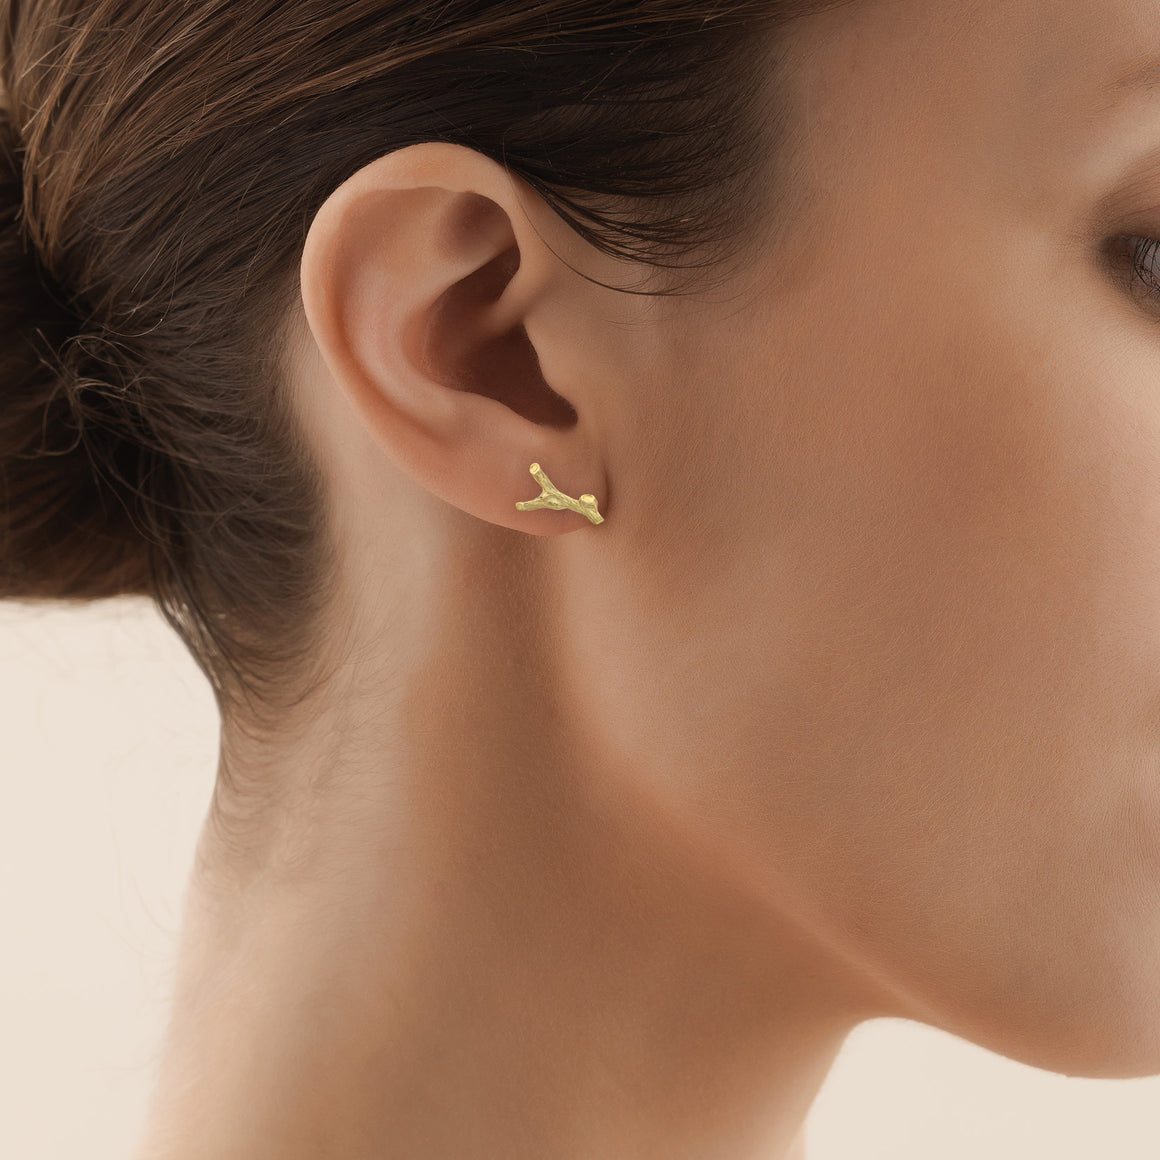 Woodland Branch Stud Earrings in Yellow Gold